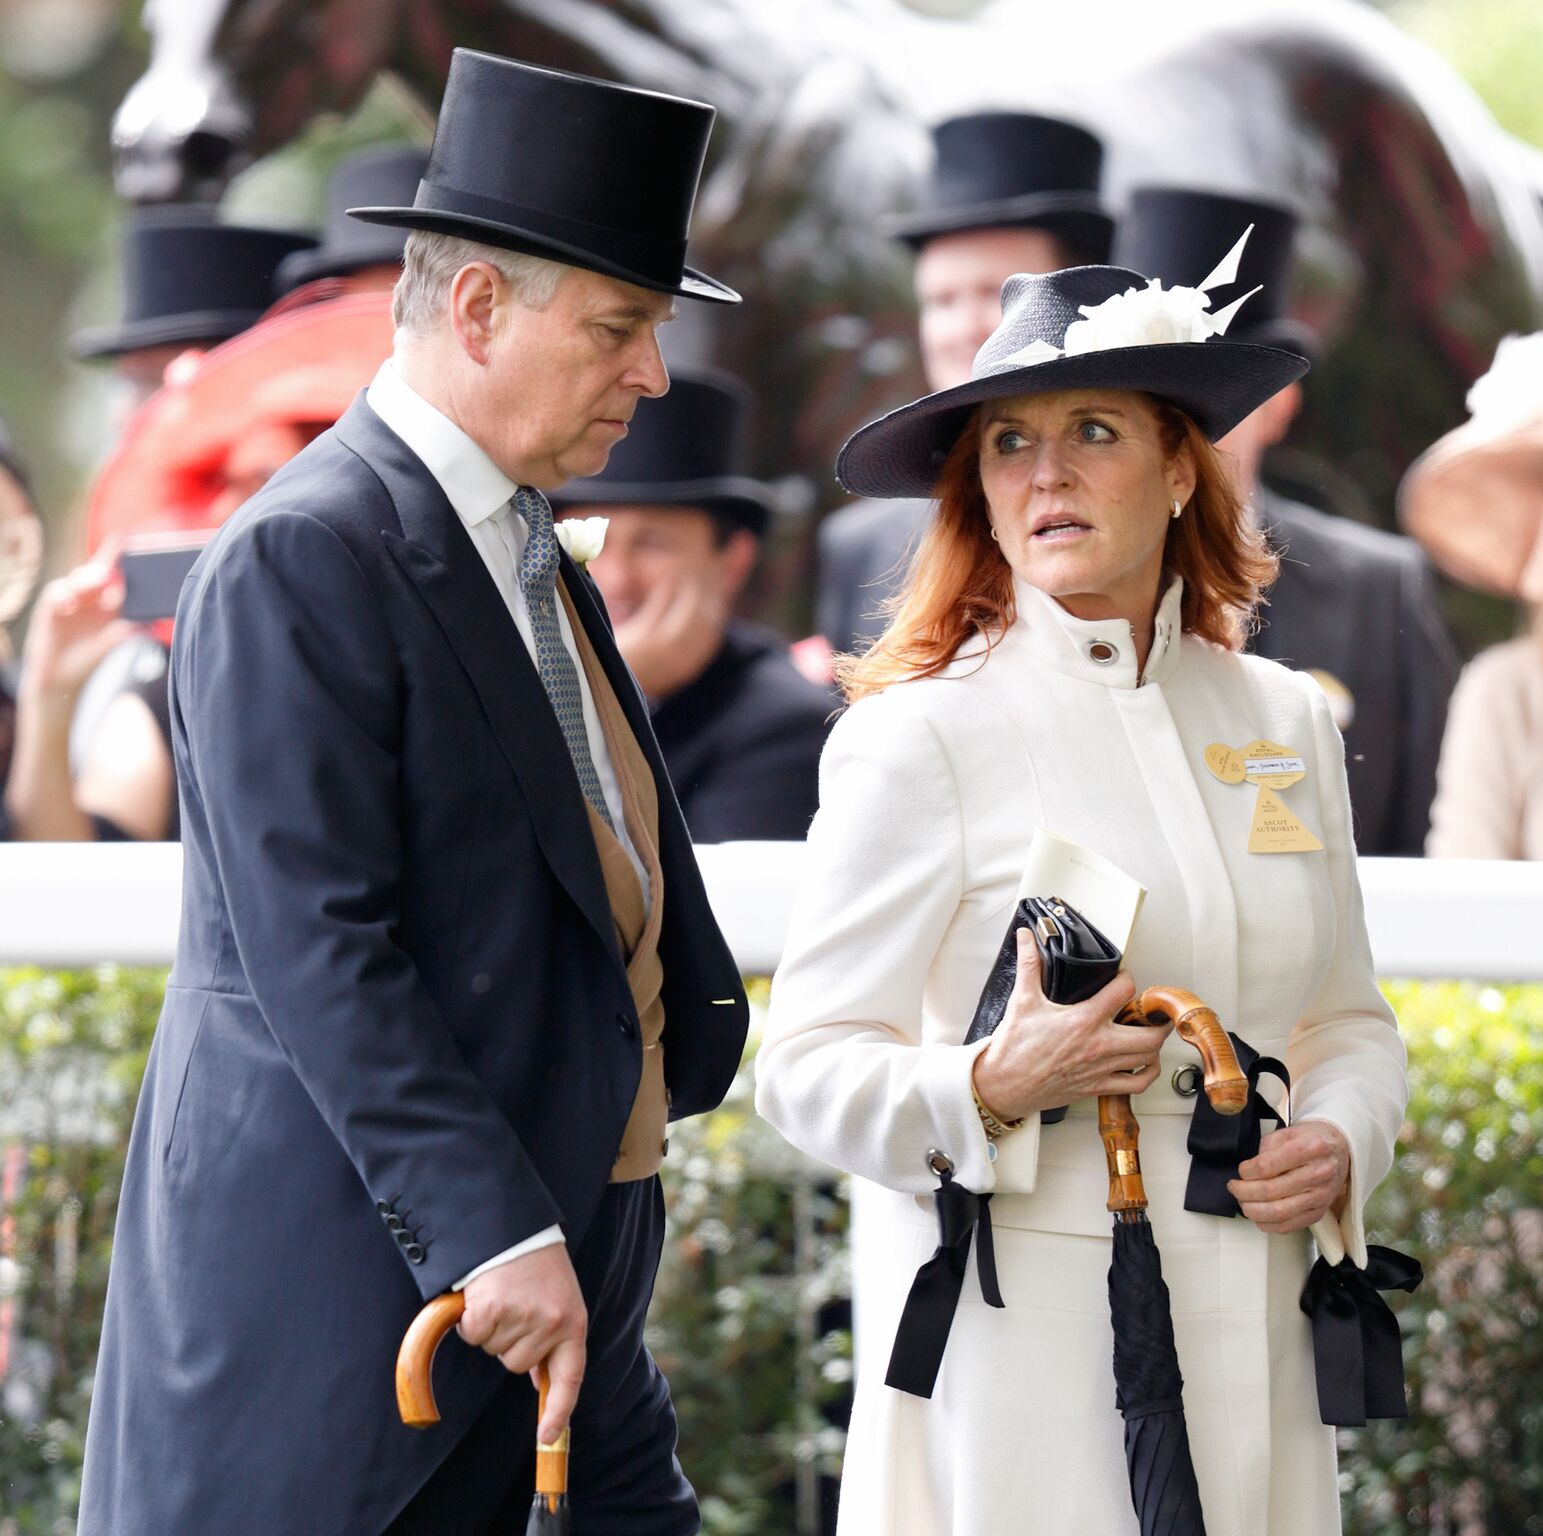 Prince Andrew and Sarah Ferguson attend day 4 of Royal Ascot | Getty Images